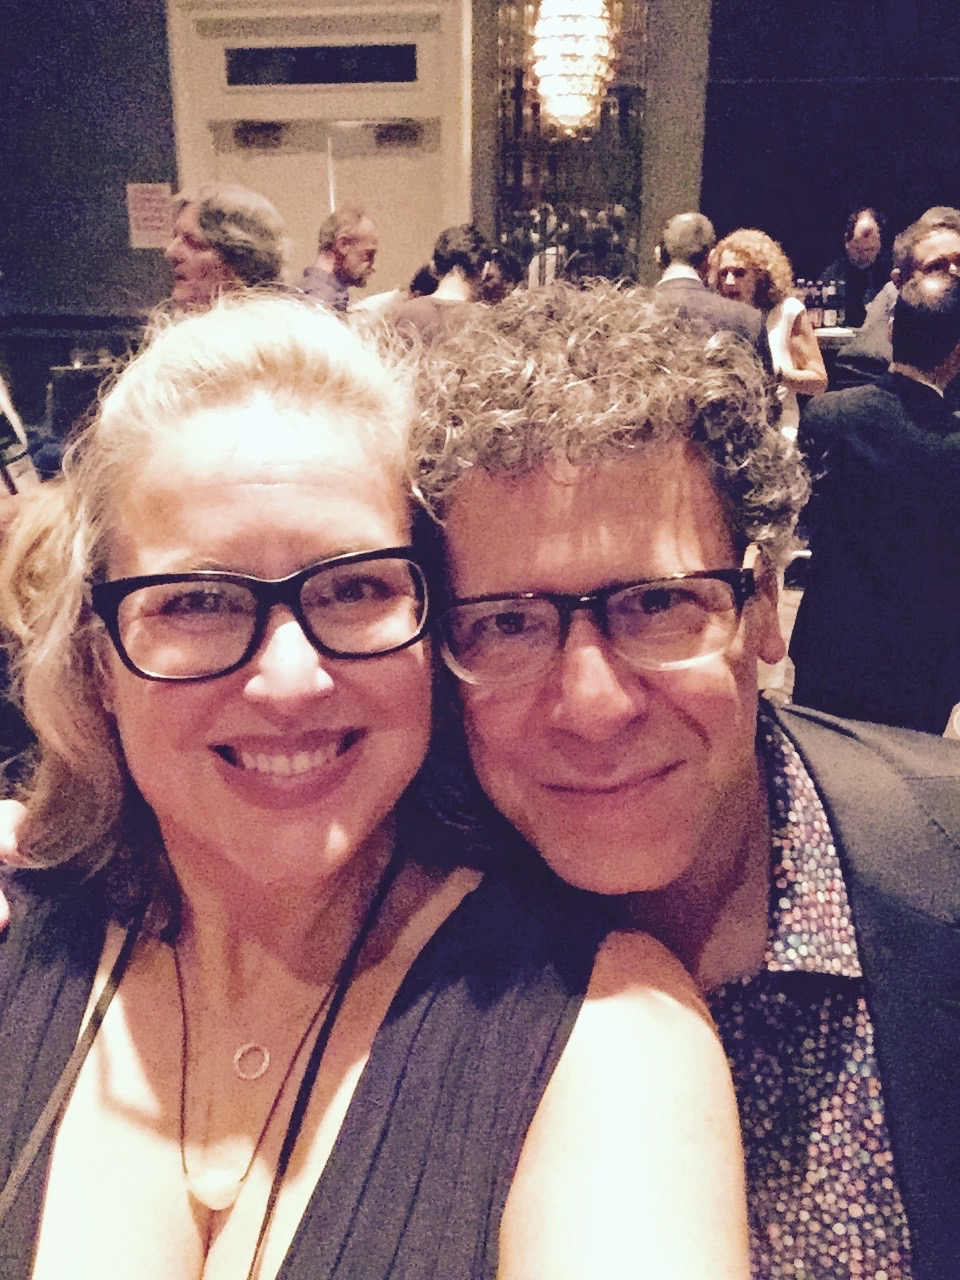 I was lucky enough to chat with SEANin New York last week at Thrillerfest!